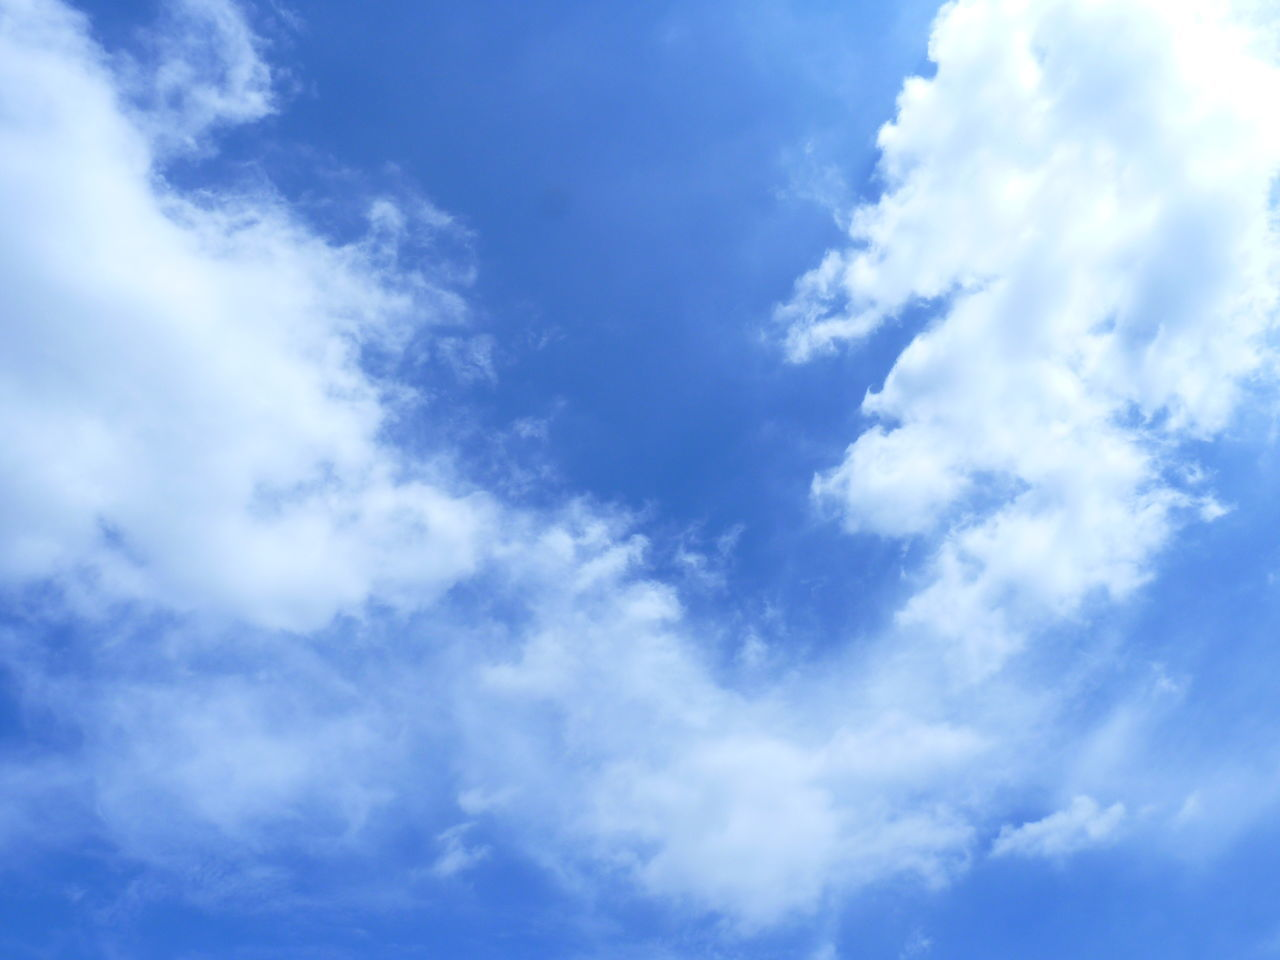 cloud - sky, sky, beauty in nature, nature, blue, low angle view, scenics, tranquility, day, no people, sky only, outdoors, backgrounds, full frame